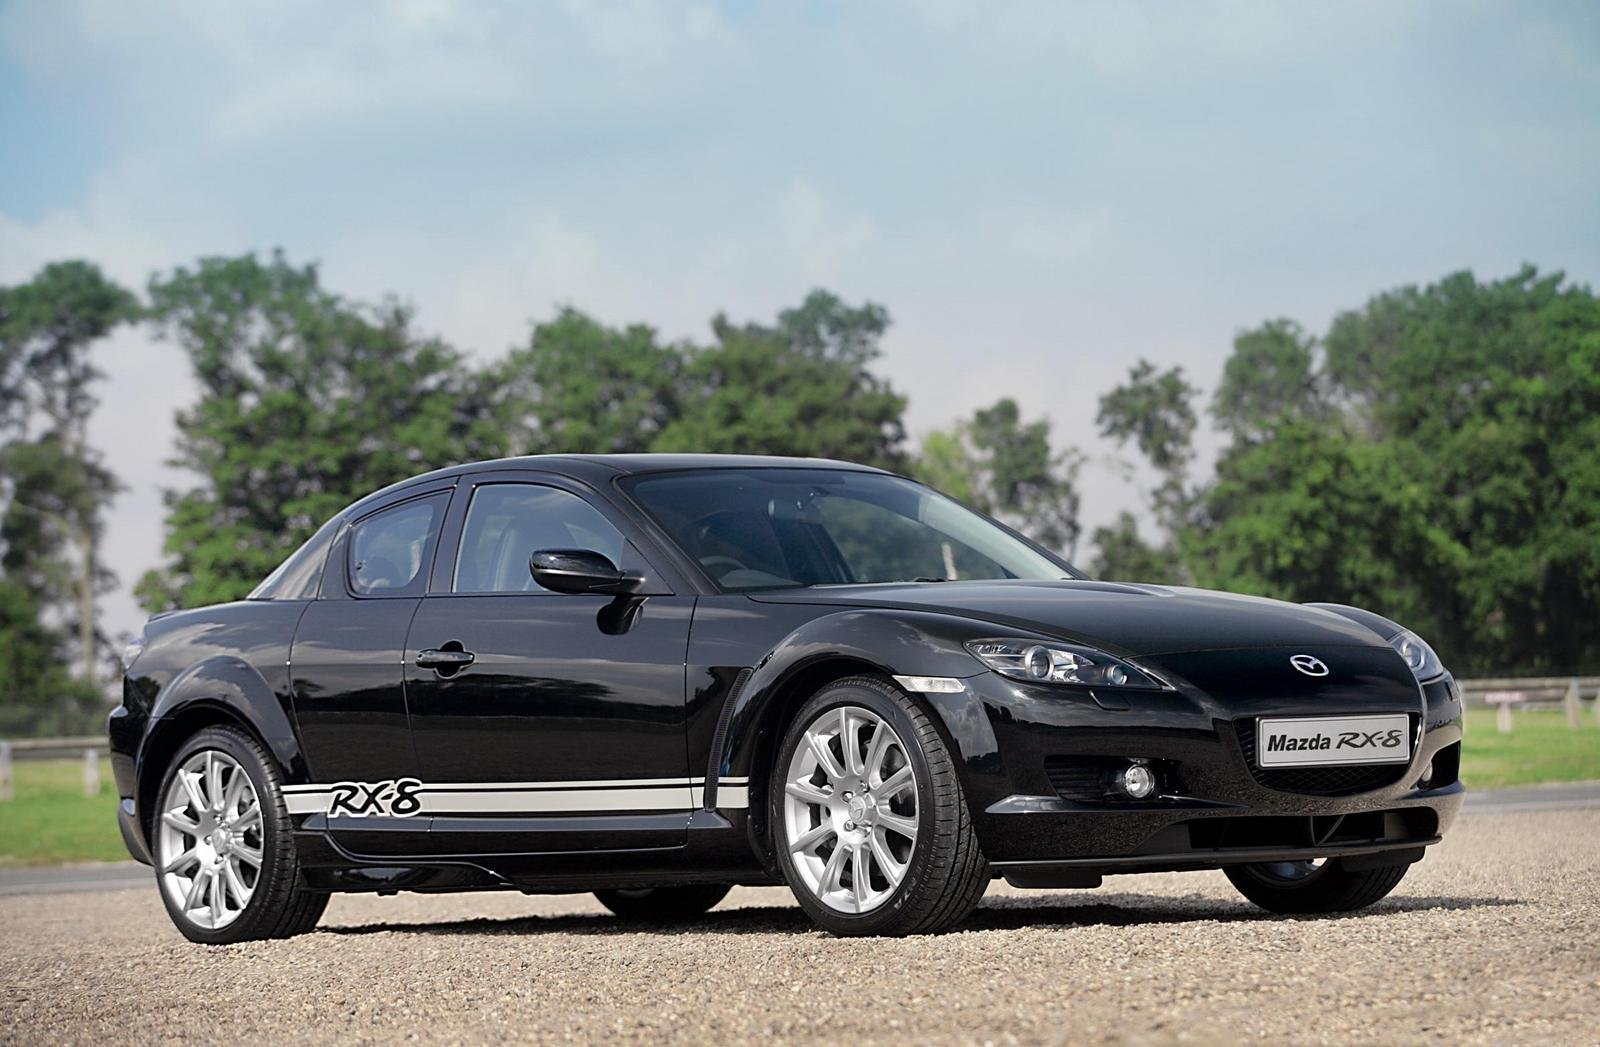 2008 mazda rx-8 sport pack review - top speed